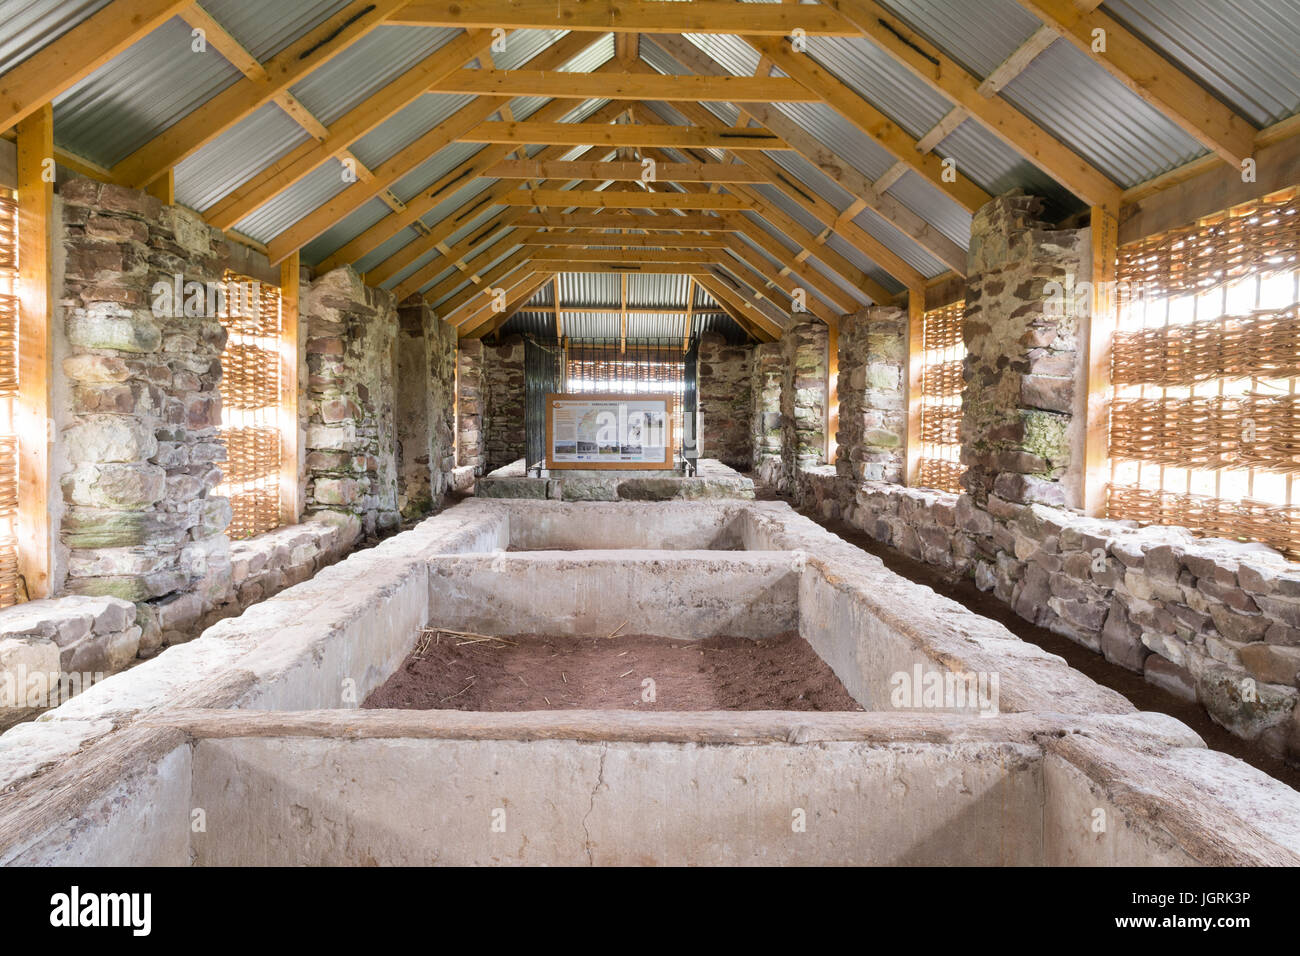 Hebridean barn - recently renovated - Applecross, Scotland, UK - Stock Image